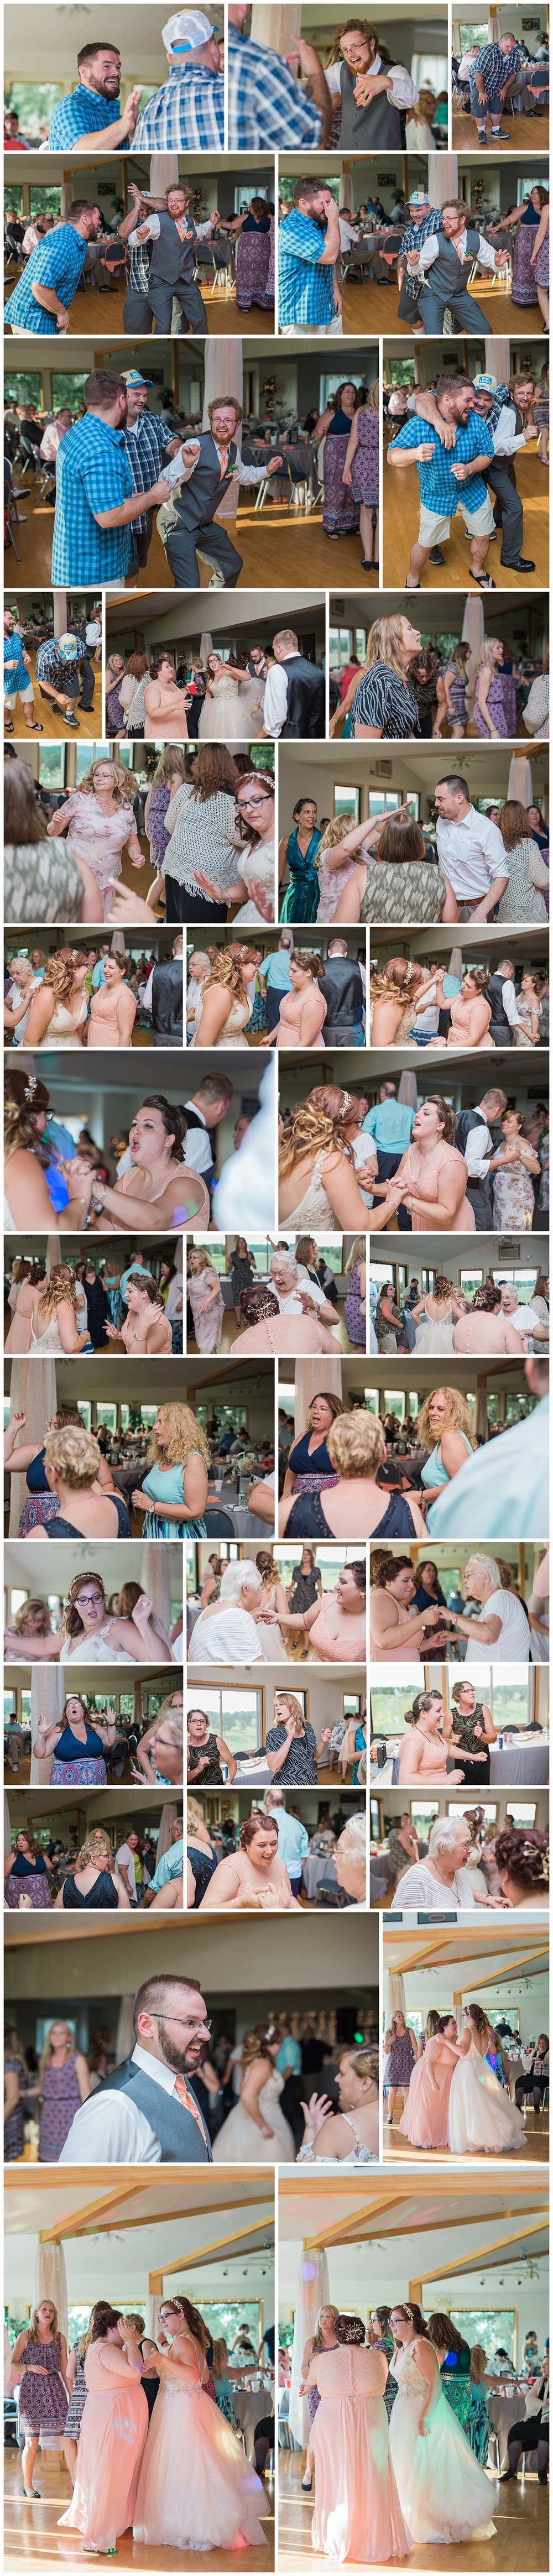 Brian and Molly Wed in Conesus NY - Lass & Beau-1266_Buffalo wedding photography.jpg